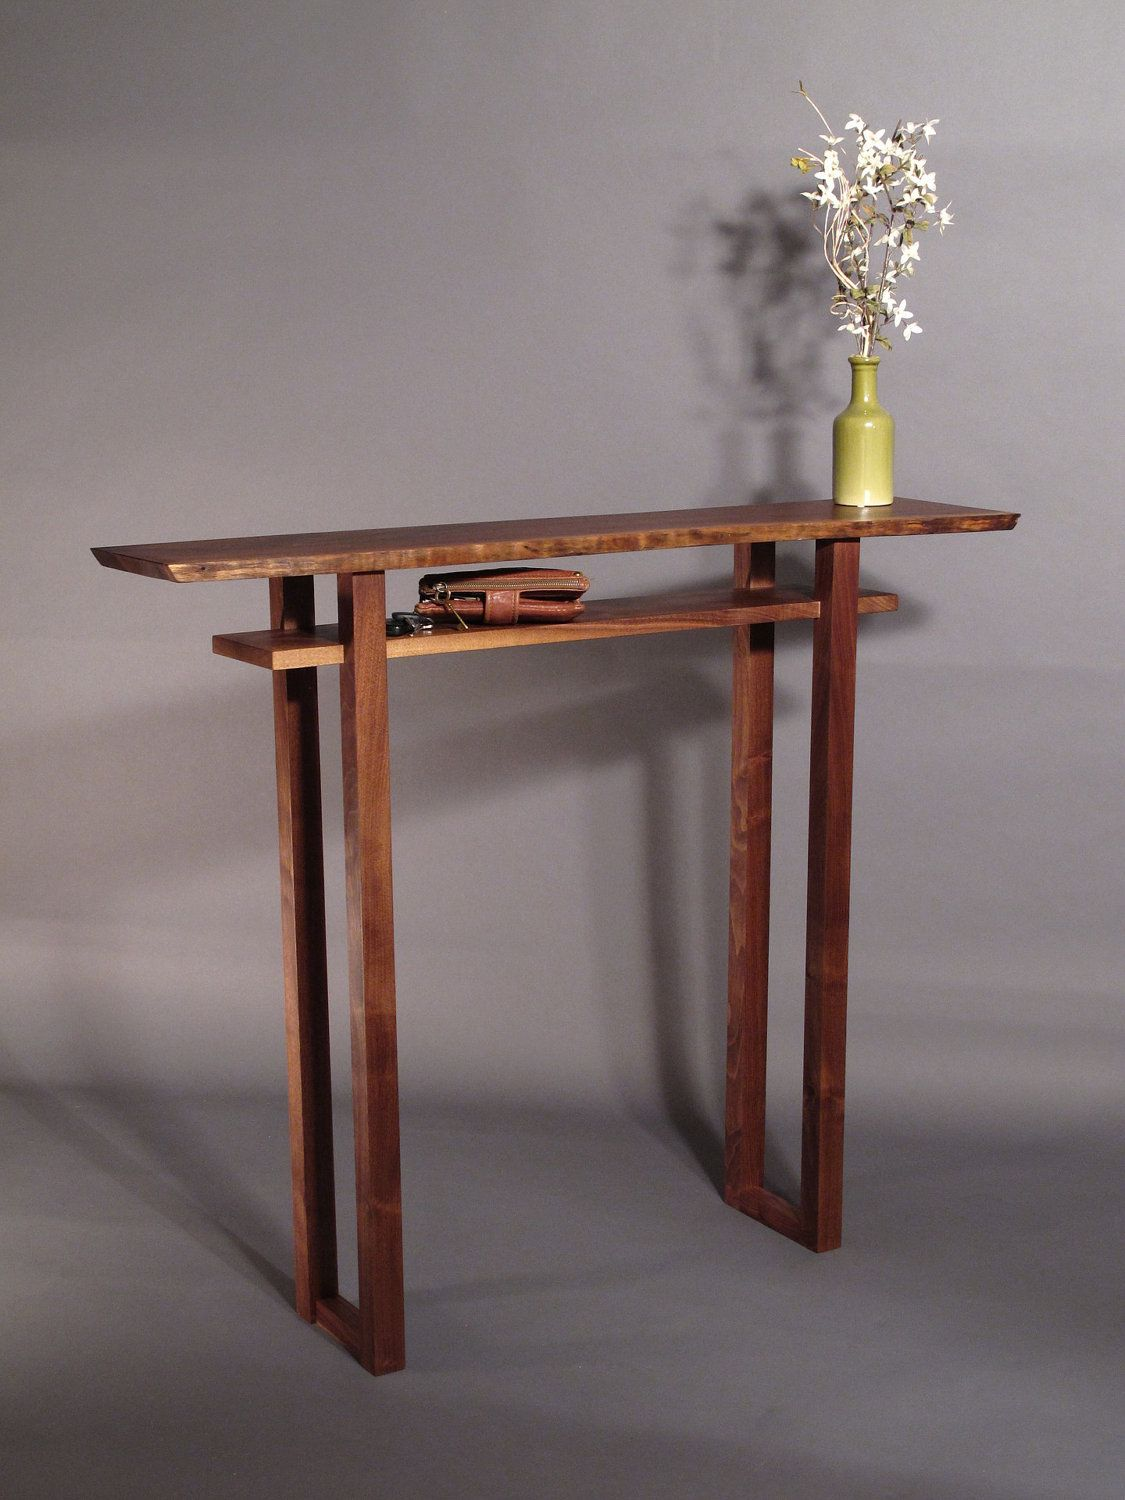 Live edge hall table handmade wood furniture for narrow hall mokuzai furnitures signature table the classic hall table in live edge walnut a beautiful narrow table perfect for your narrow console table hall table geotapseo Choice Image